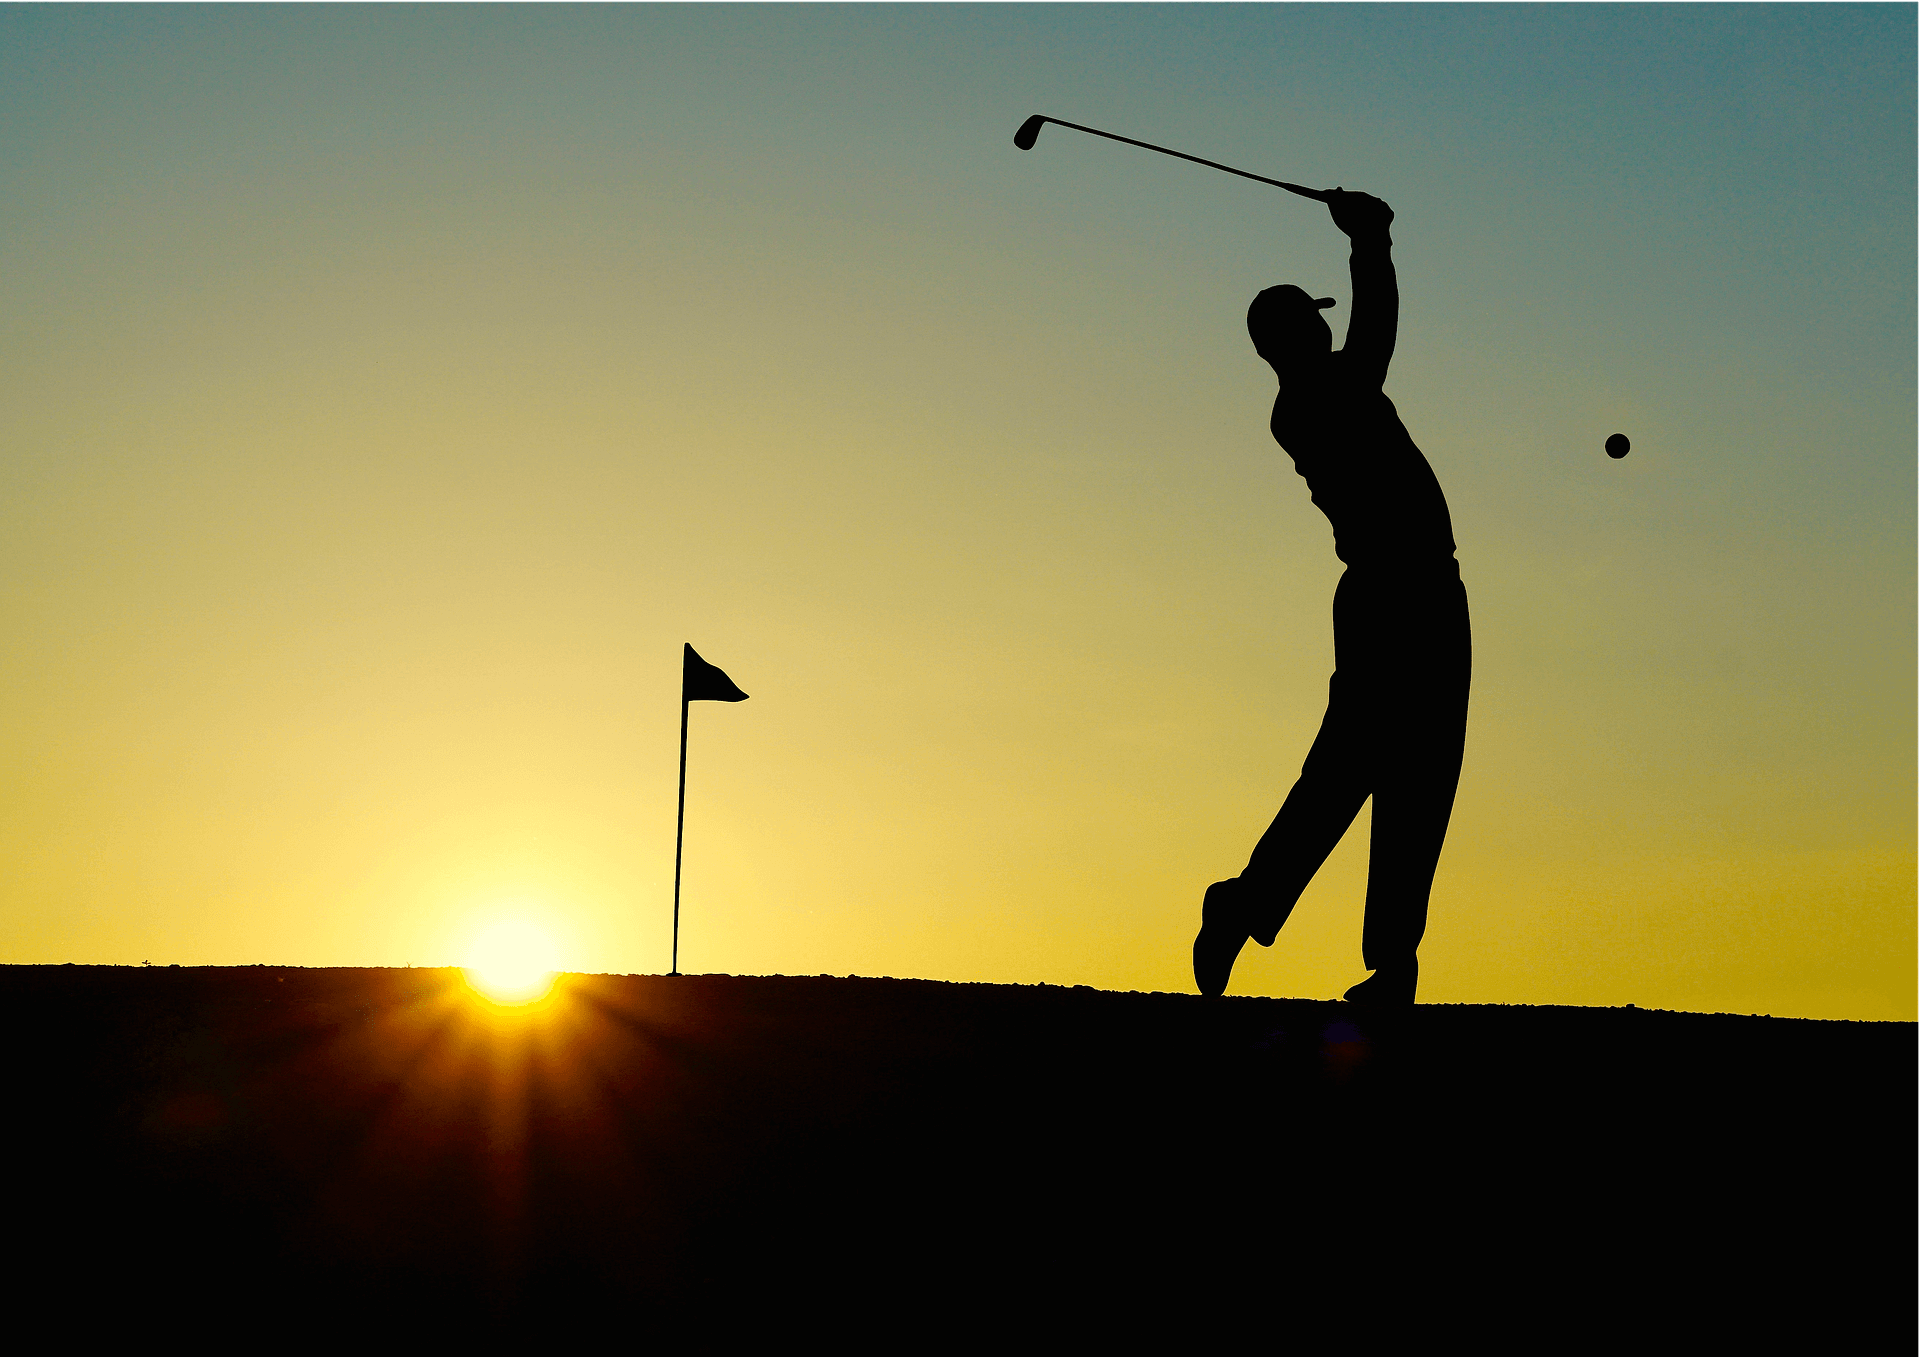 golf-787826_1920-1.png